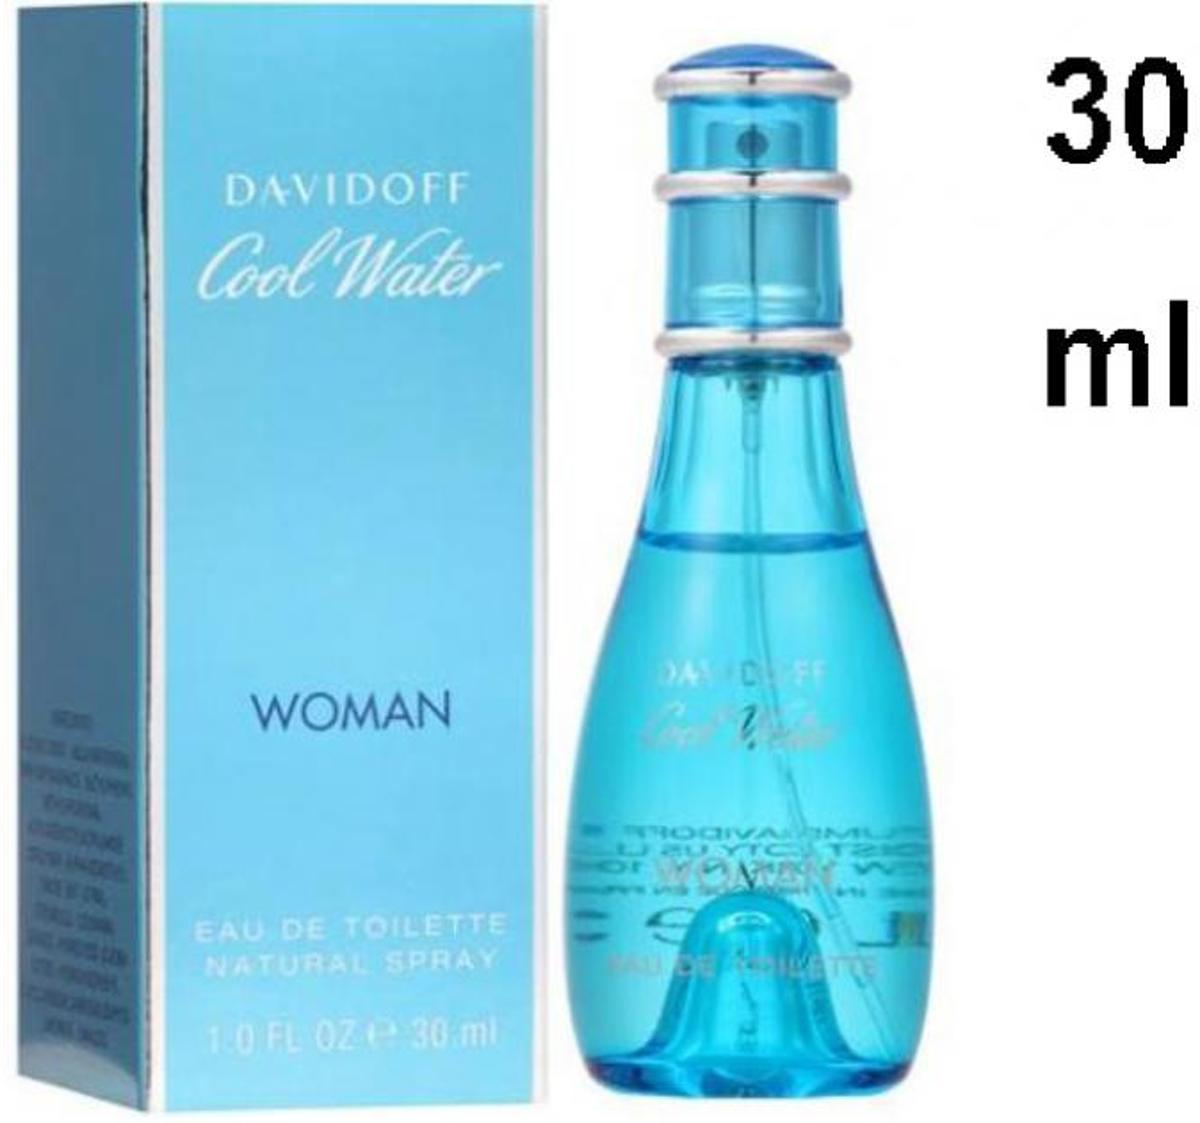 COOL WATER WOMAN special edition edt vapo 30 ml